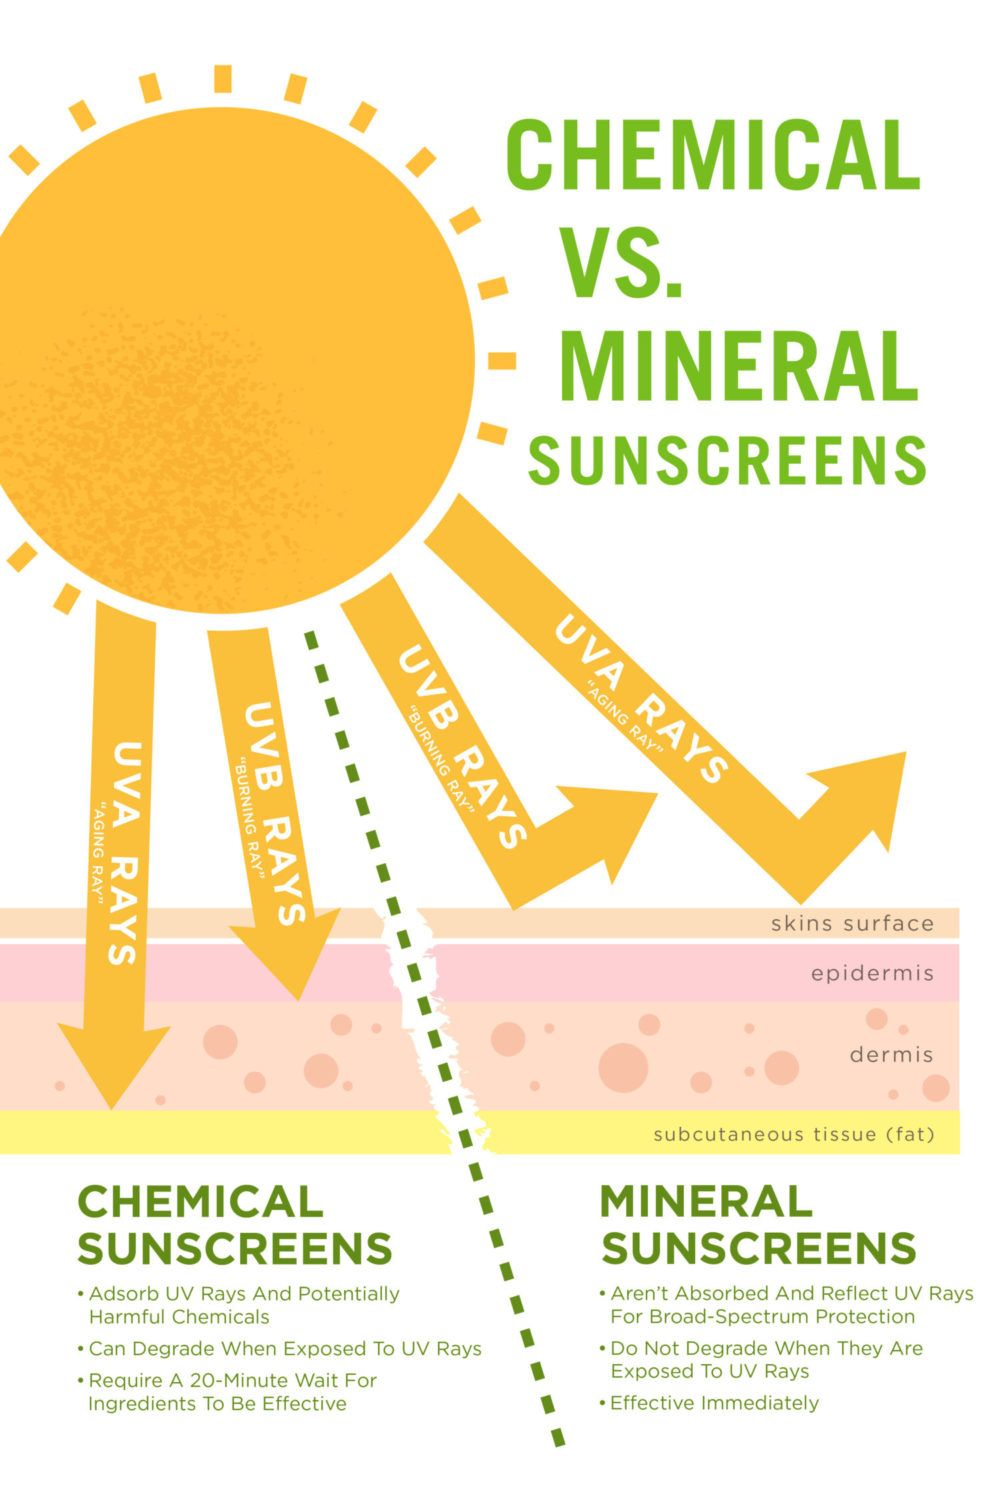 Mineral Sunscreen Vs Chemical Sunscreen Google Search Herbal Skin Care Skin Care Acne Skin Facts